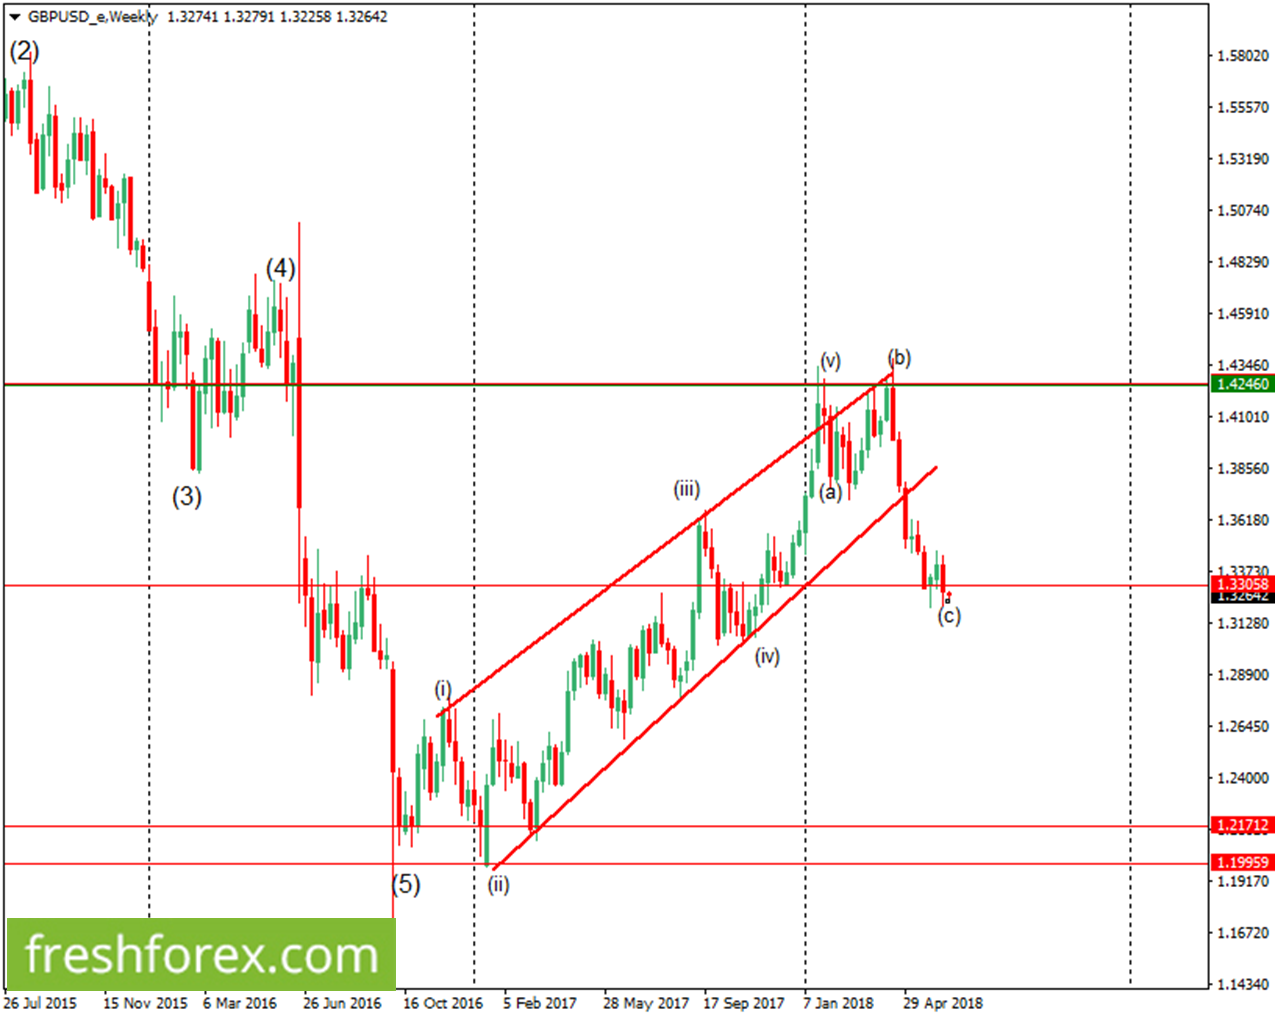 sell the cable below 1.33058